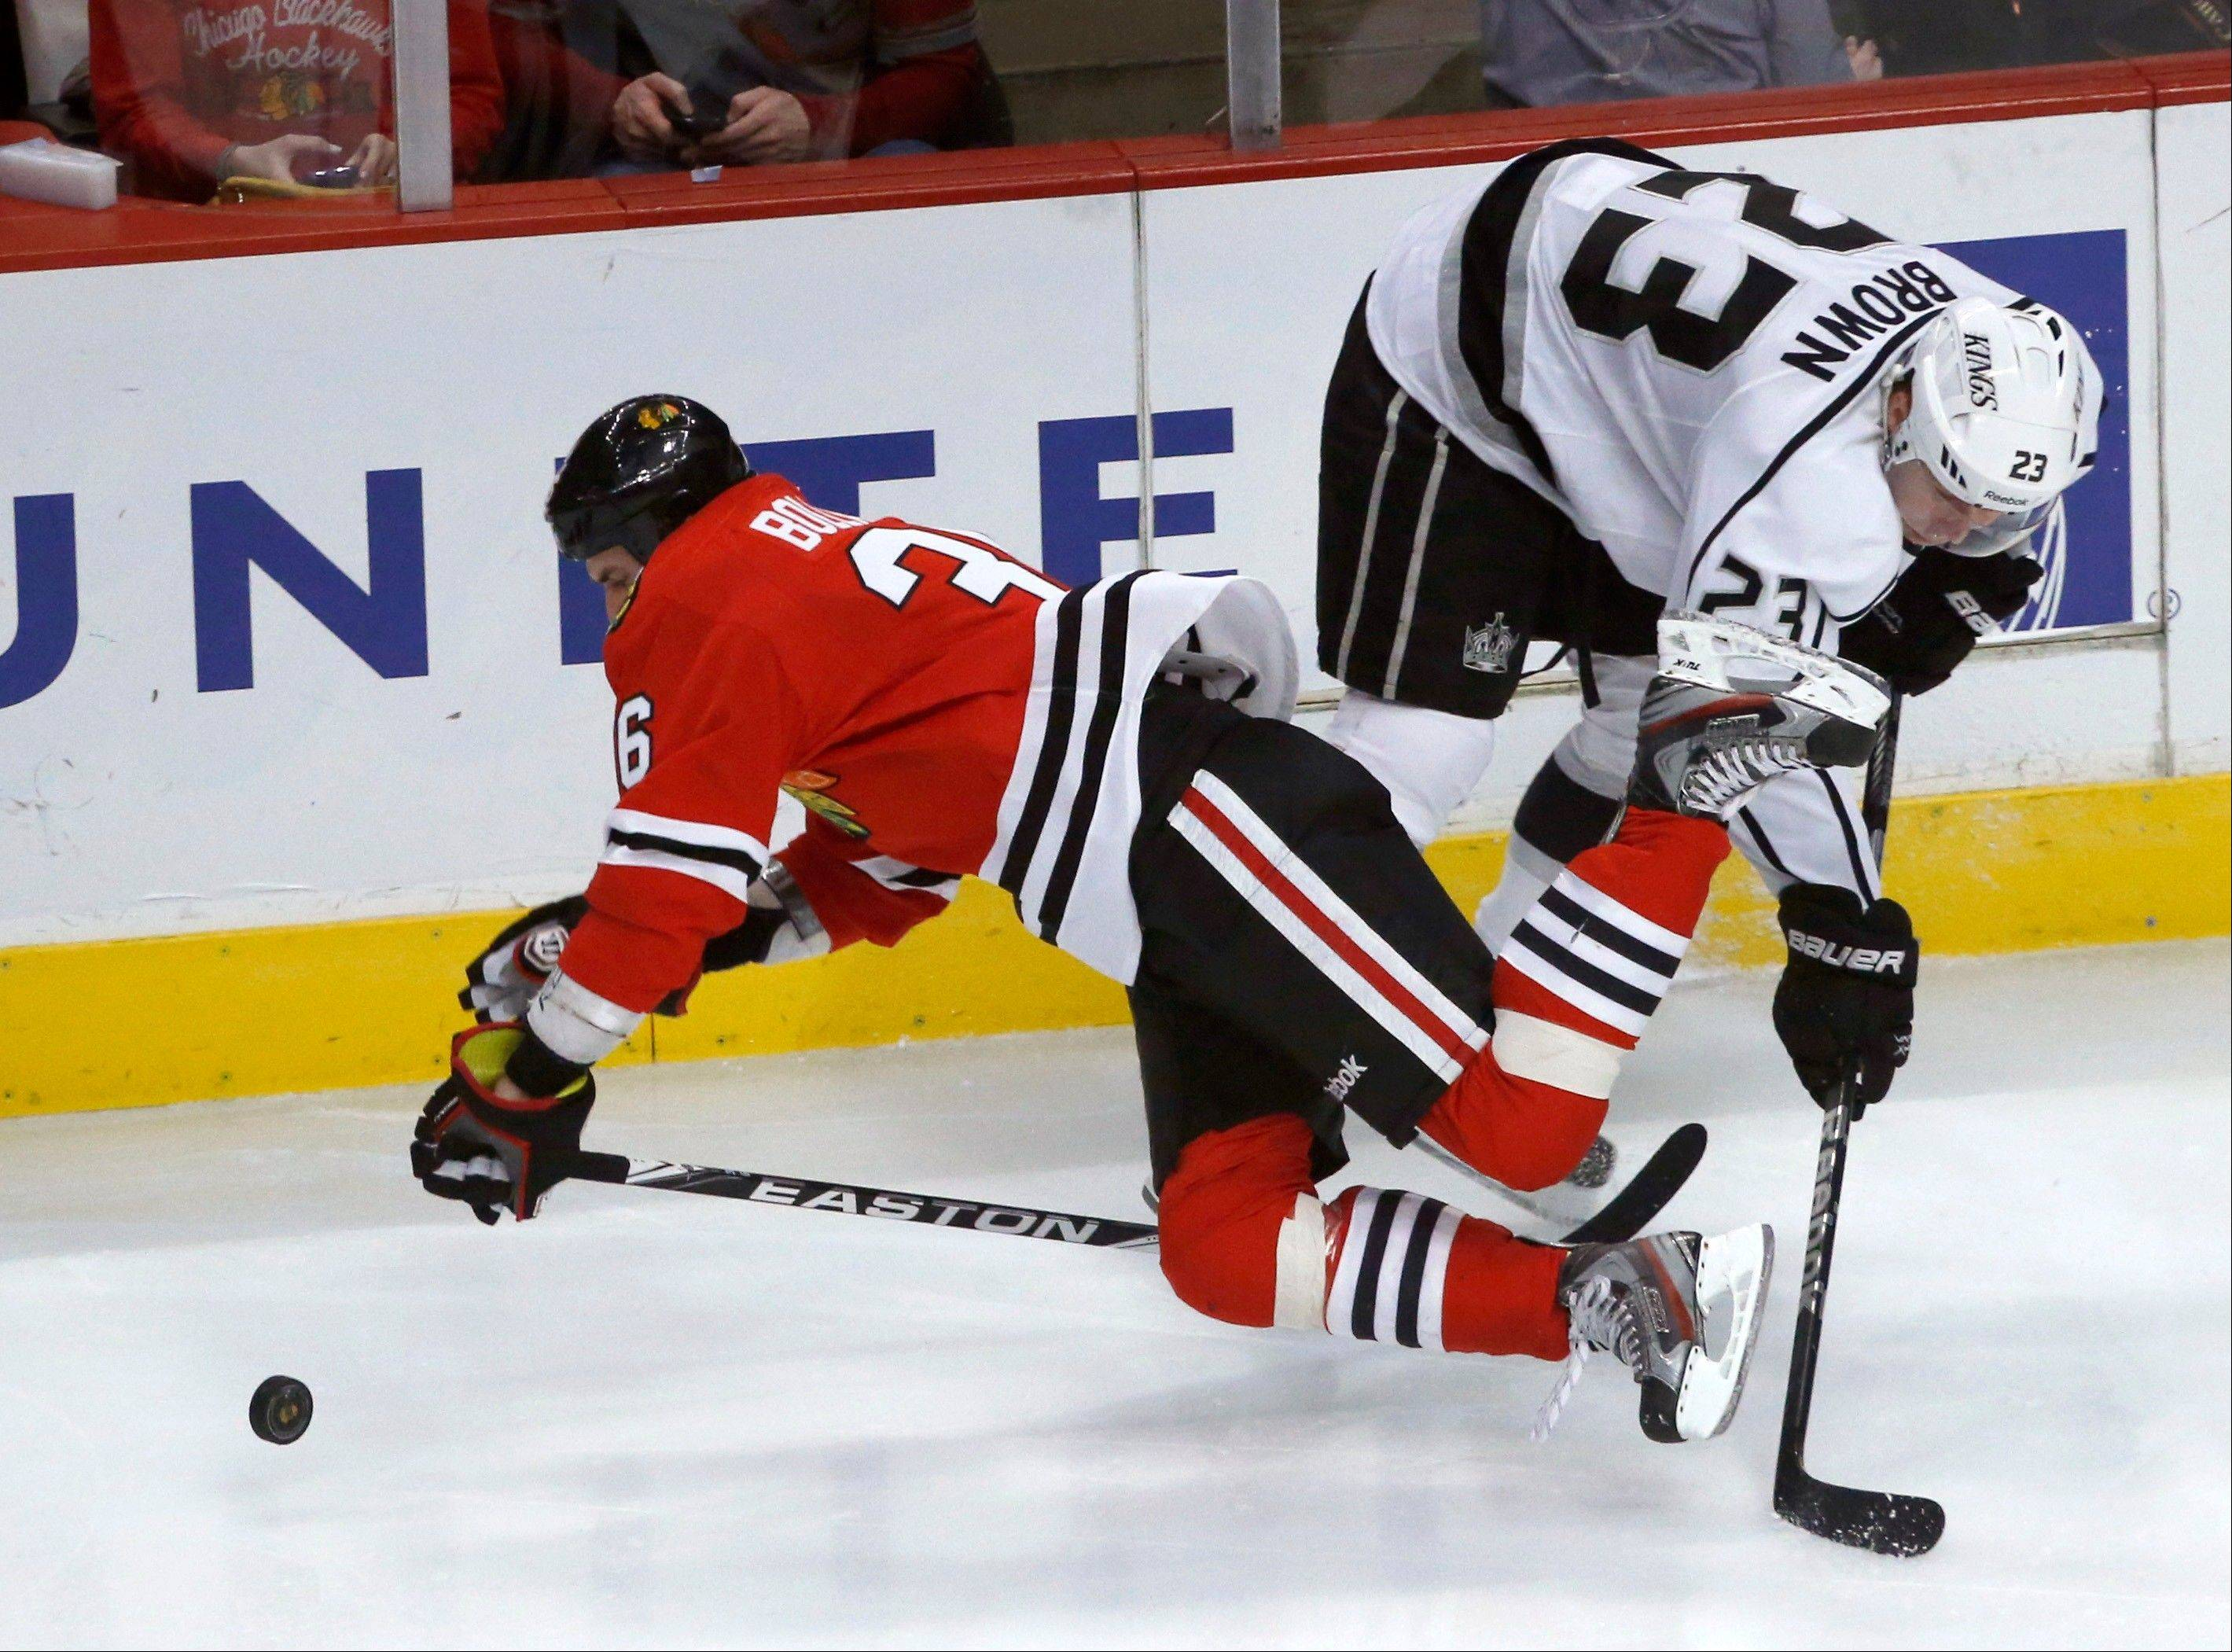 Chicago Blackhawks center Dave Bolland, left, falls over the stick of Los Angeles Kings right wing Dustin Brown during the third period of an NHL hockey game, Monday, March 25, 2013, in Chicago. The Kings won 5-4.